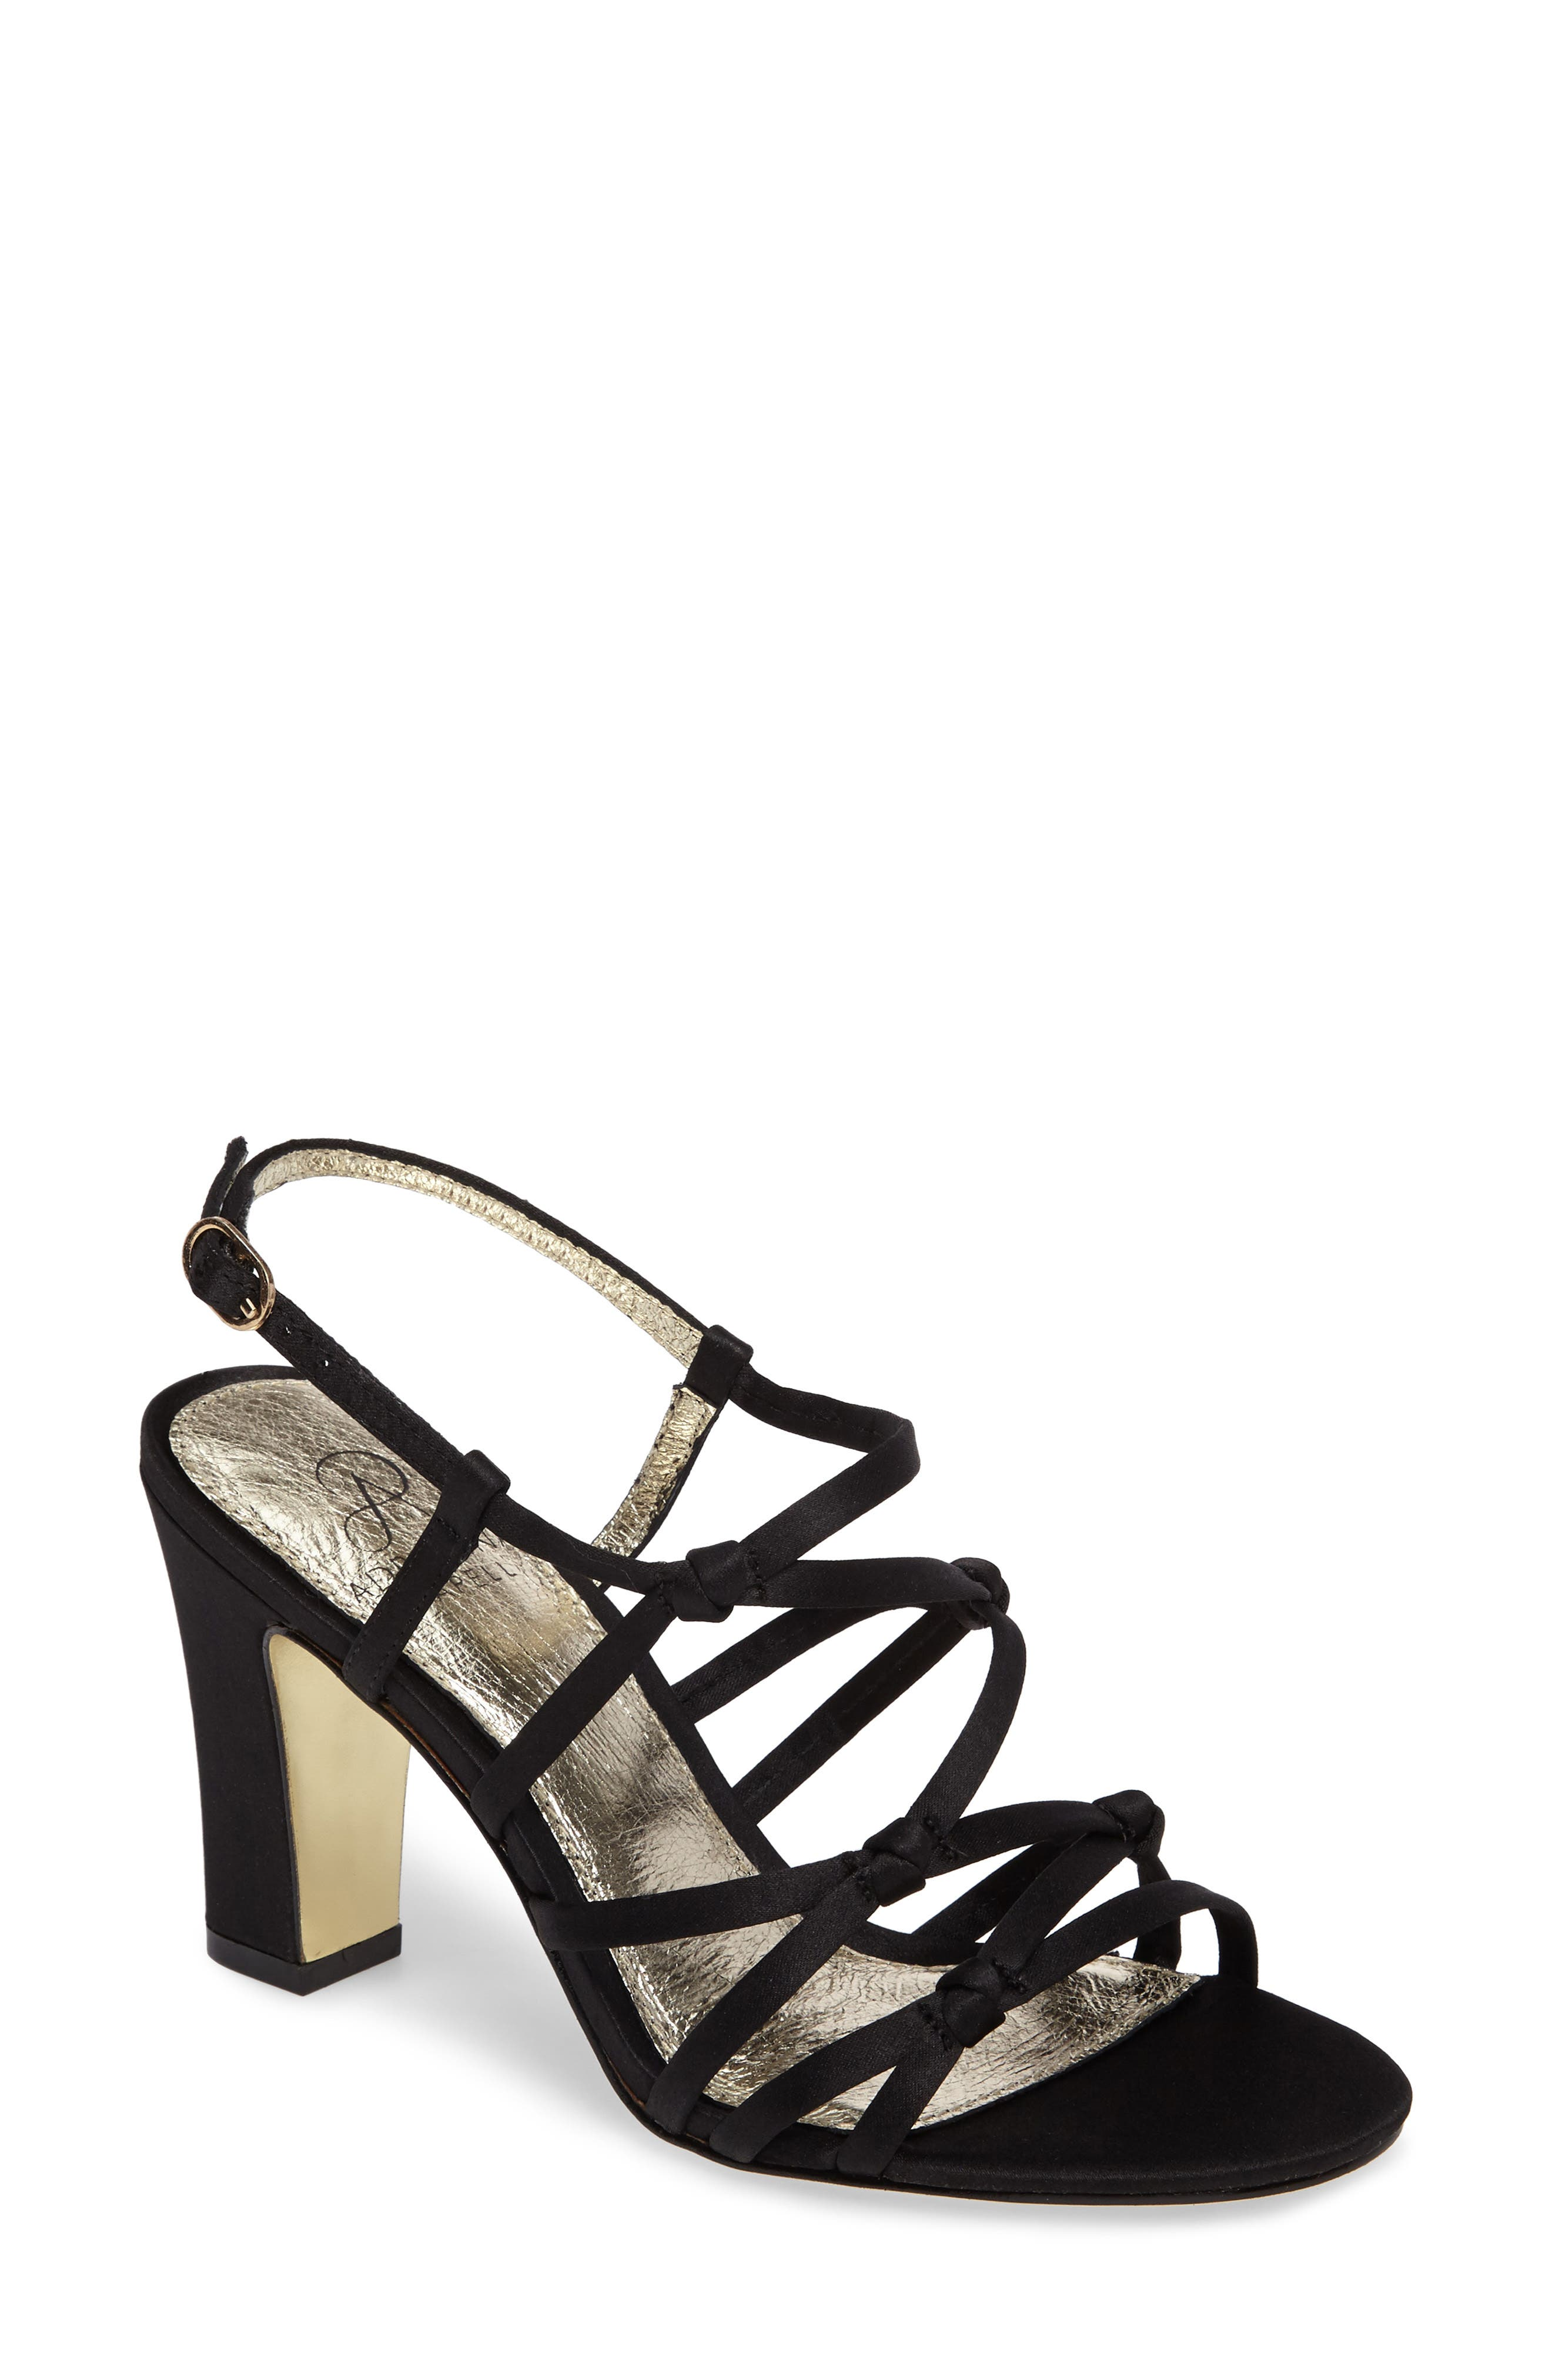 Adelson Knotted Strappy Sandal,                         Main,                         color, 001